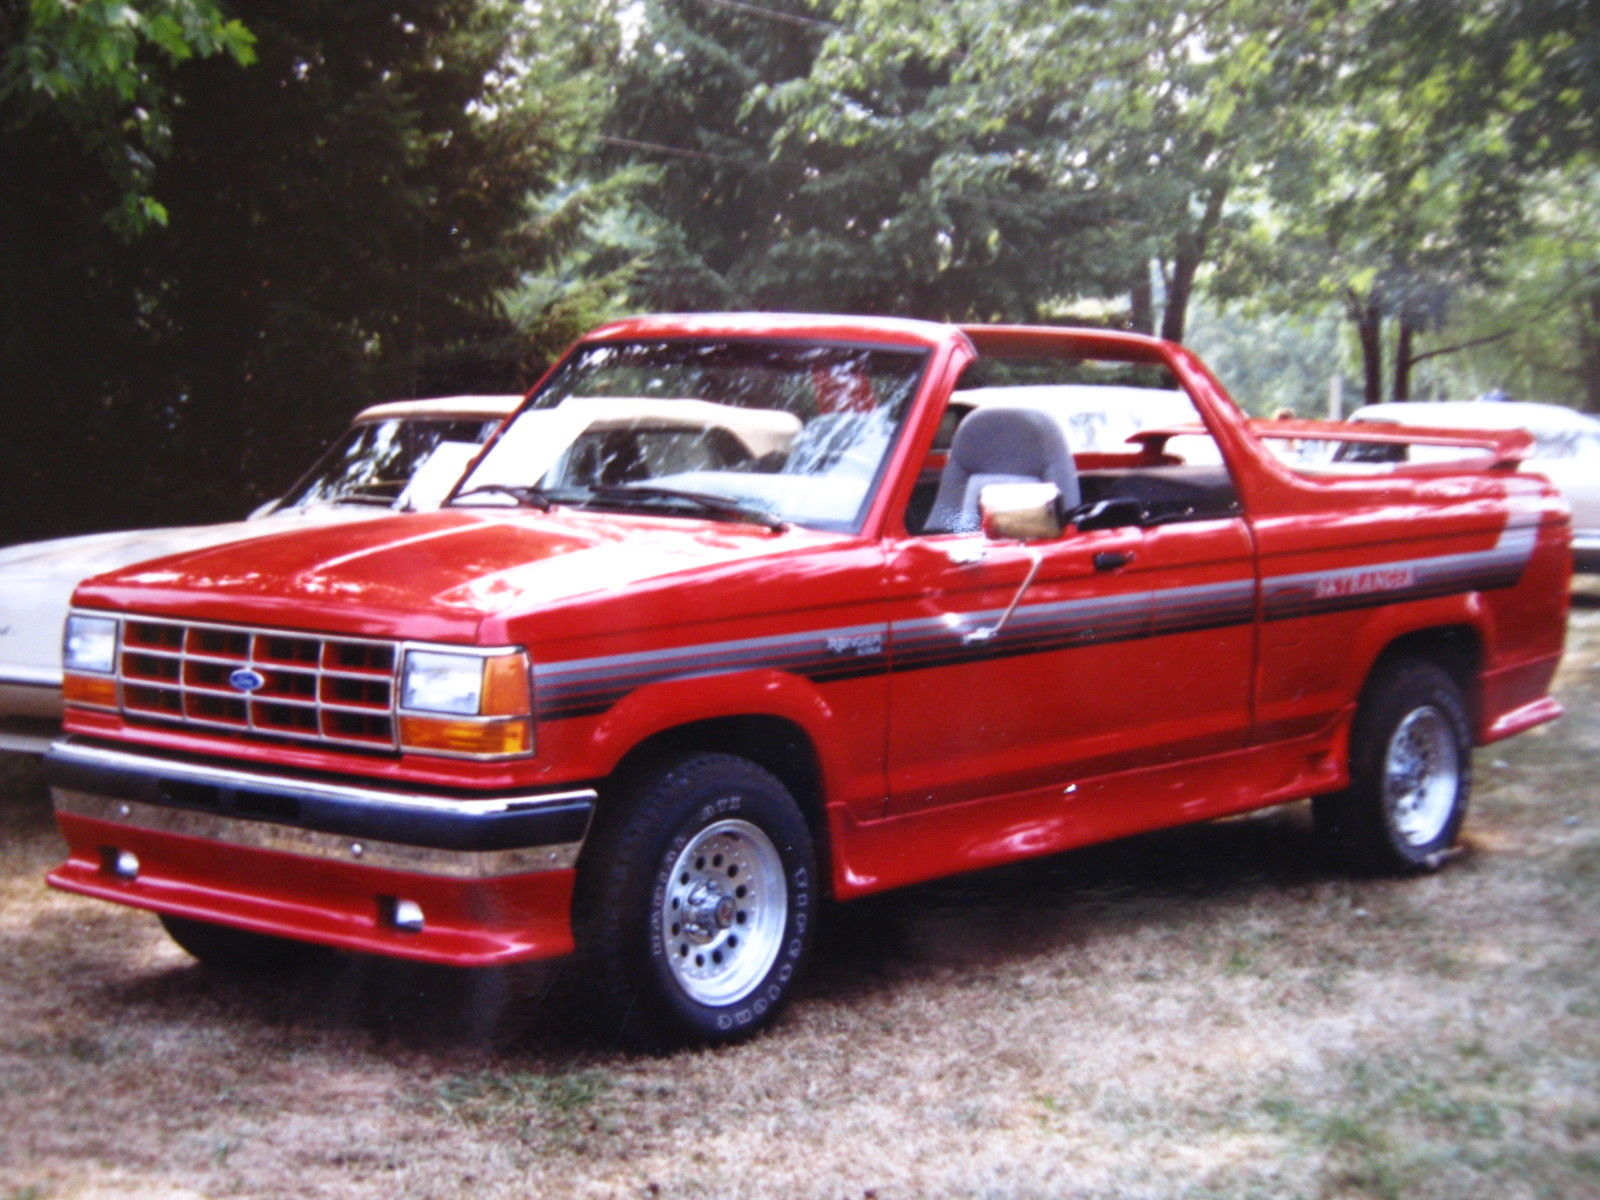 New Ford F150 >> This Ford Skyranger Convertible is a Rare Pickup Truck - autoevolution